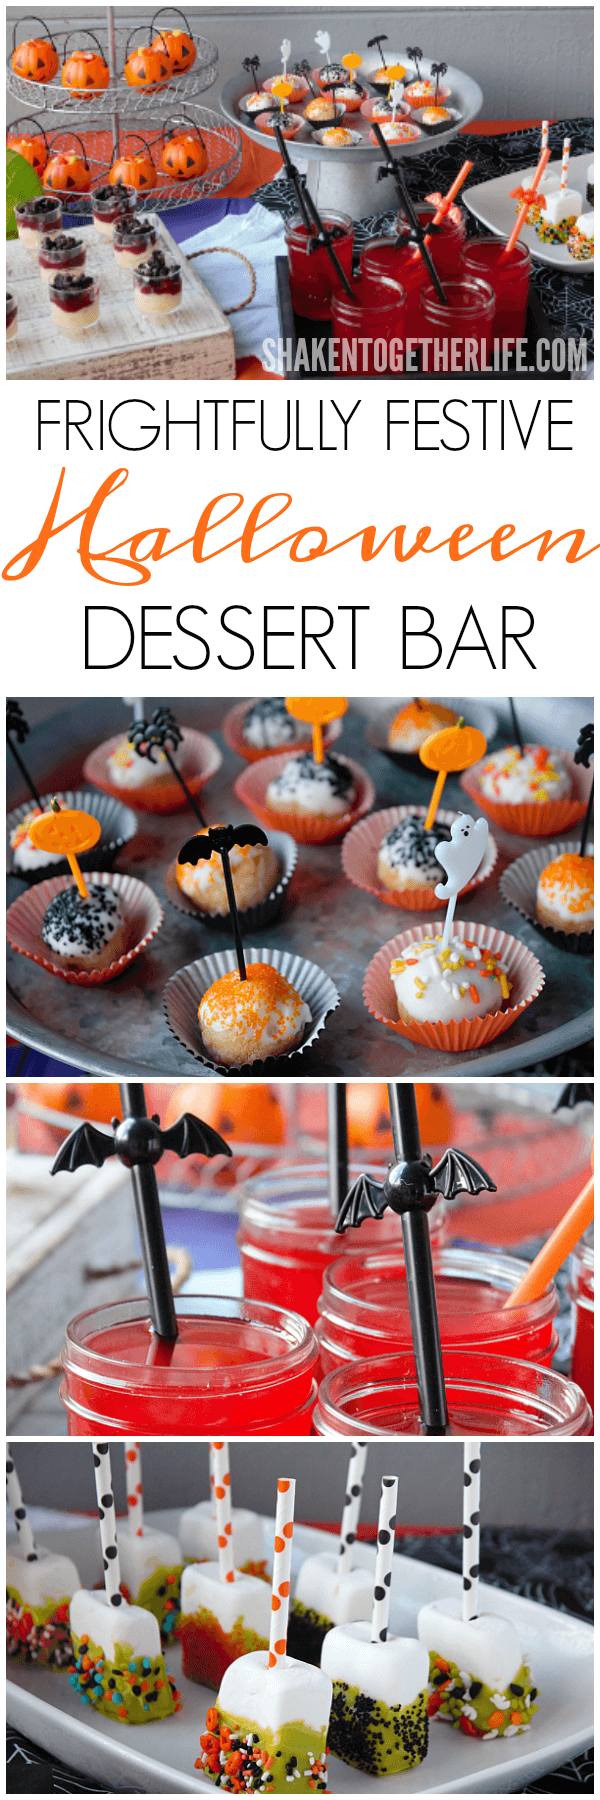 Set up a Frightfully Festive Halloween Dessert Bar this Halloween! You'll love all the no bake Halloween recipes and no stress decorations!!